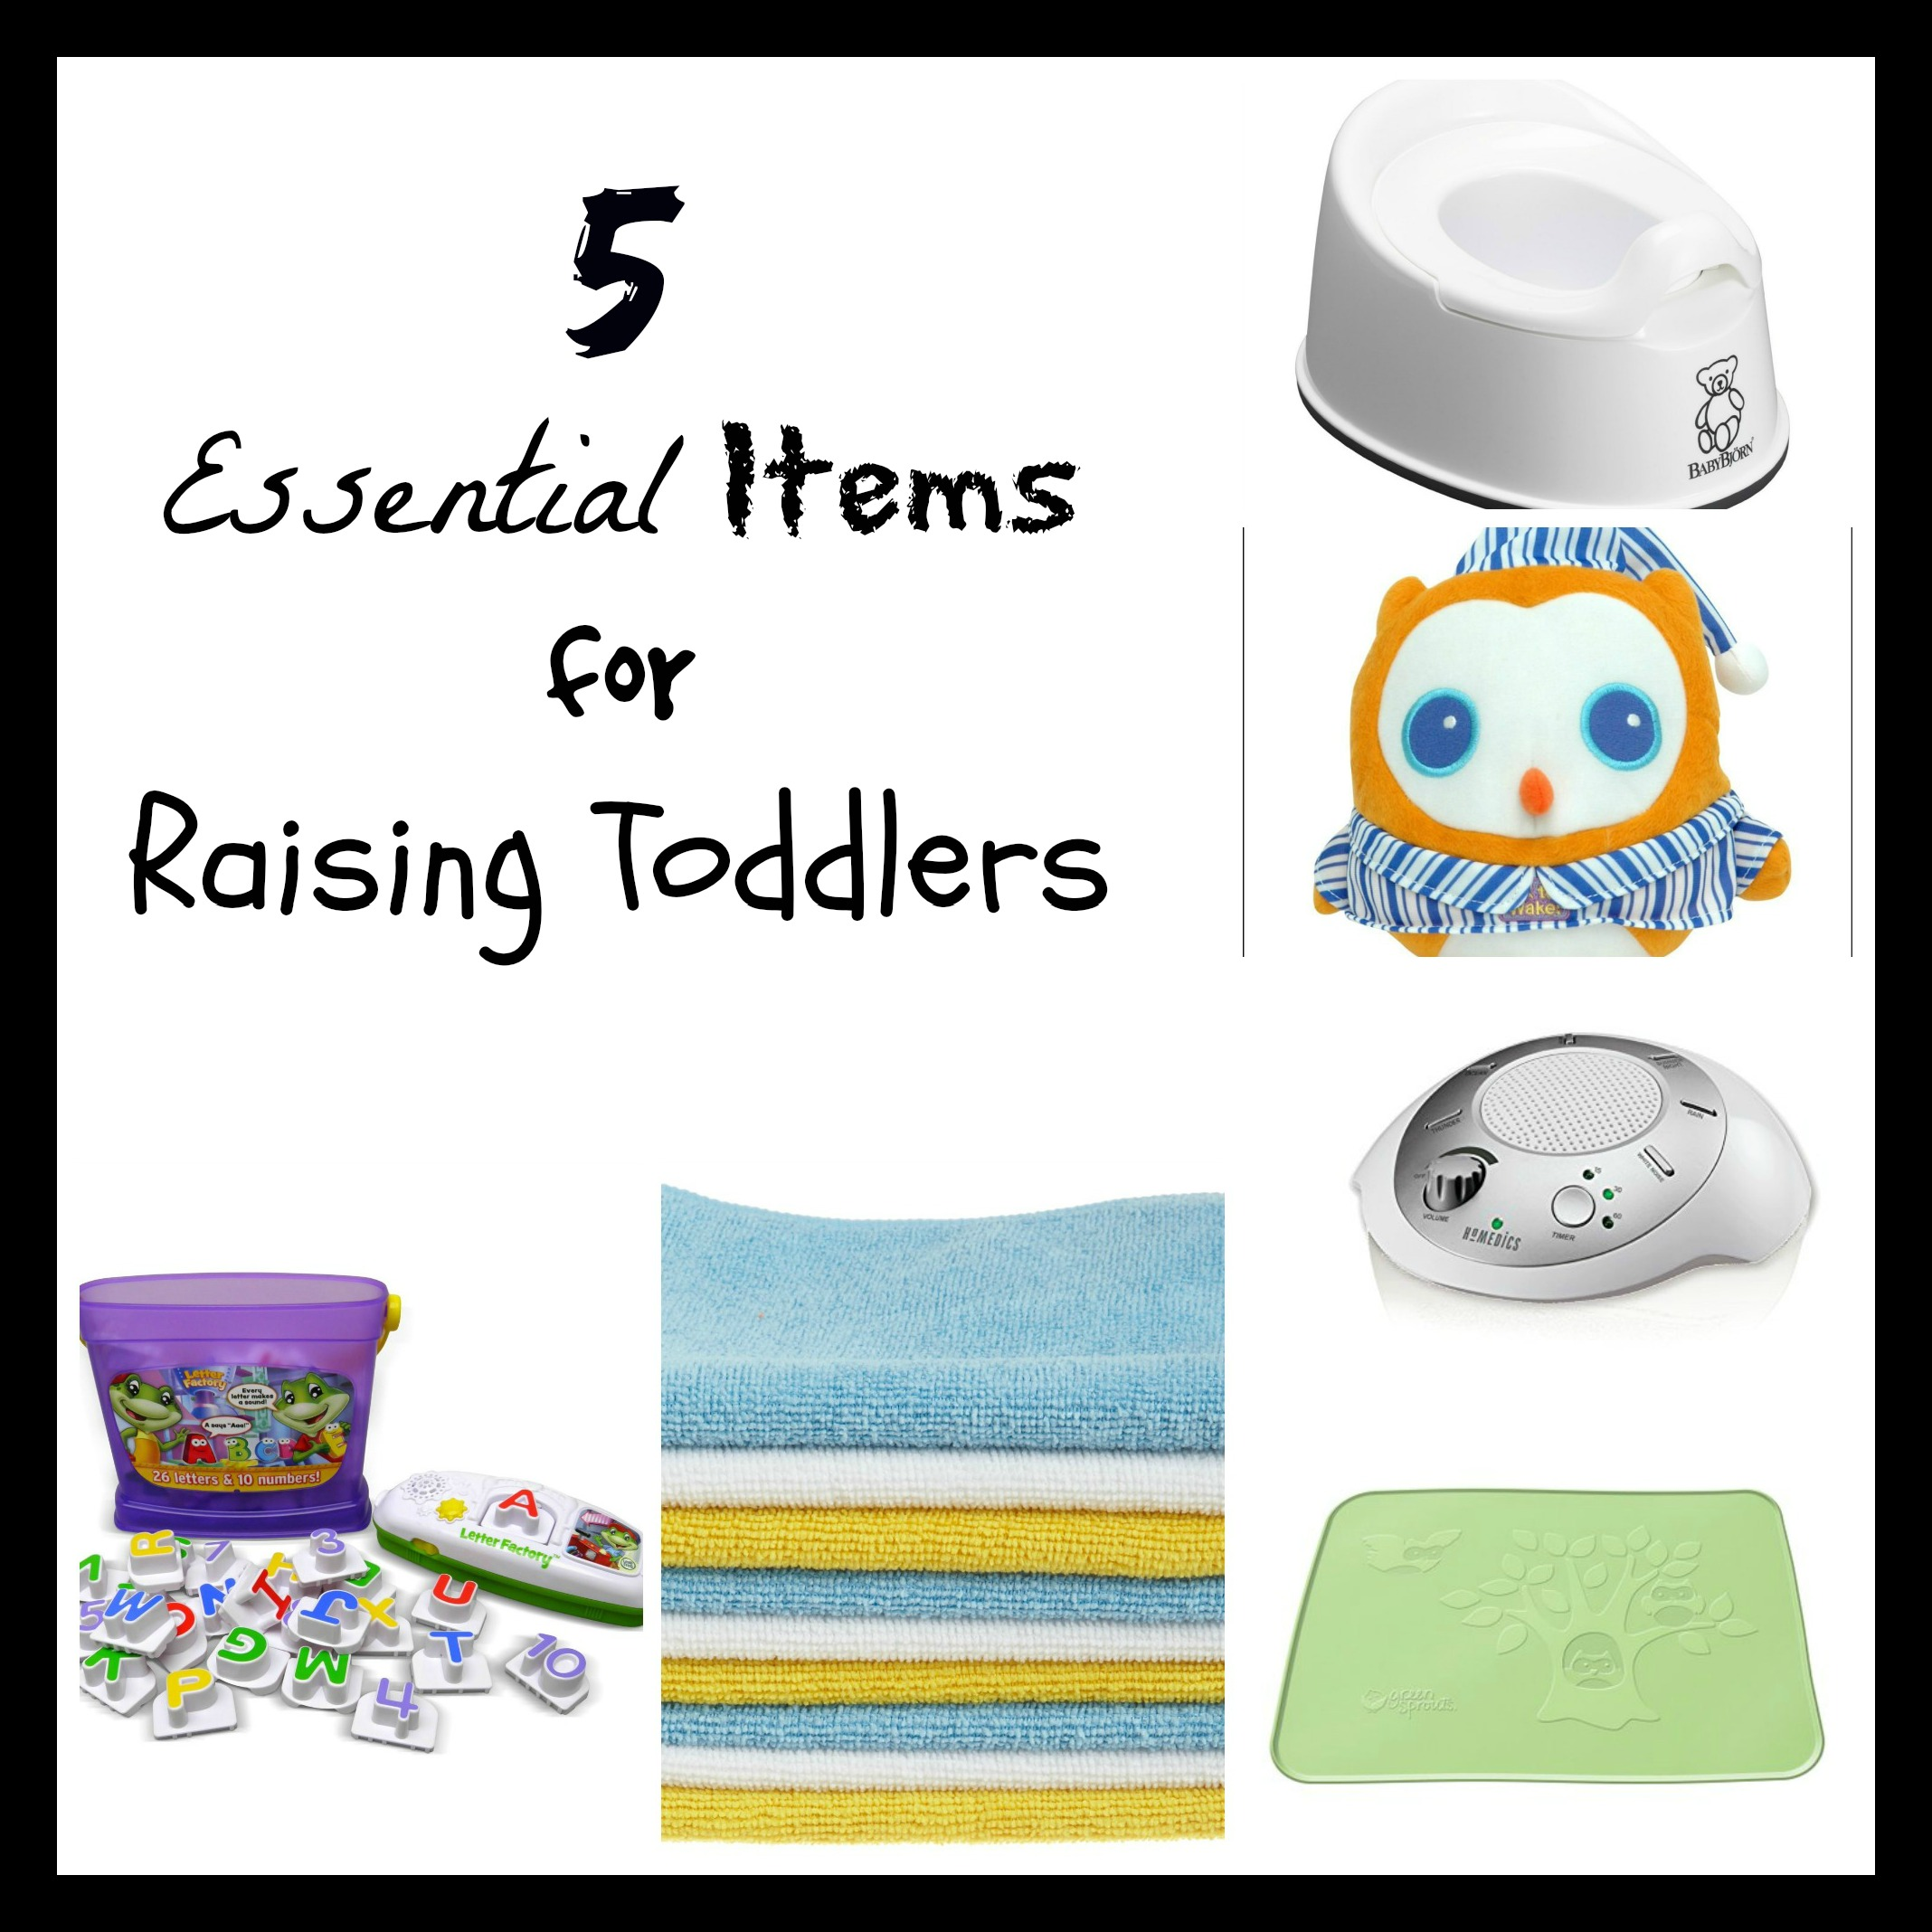 5 Essential Items for Raising Toddlers